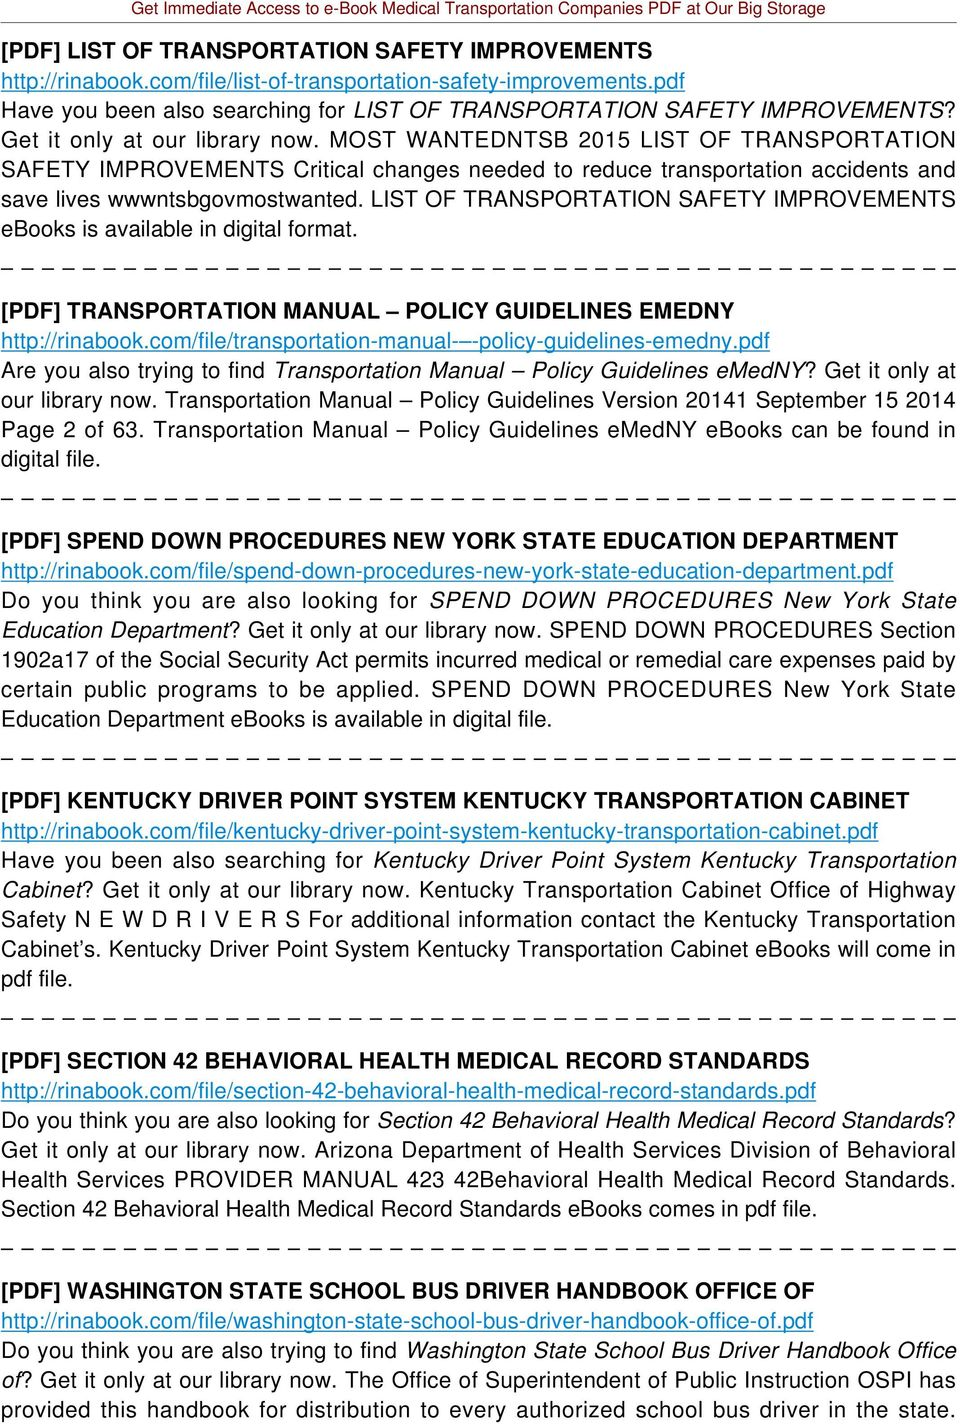 LIST OF TRANSPORTATION SAFETY IMPROVEMENTS ebooks is available in digital format. [PDF] TRANSPORTATION MANUAL POLICY GUIDELINES EMEDNY http://rinabook.